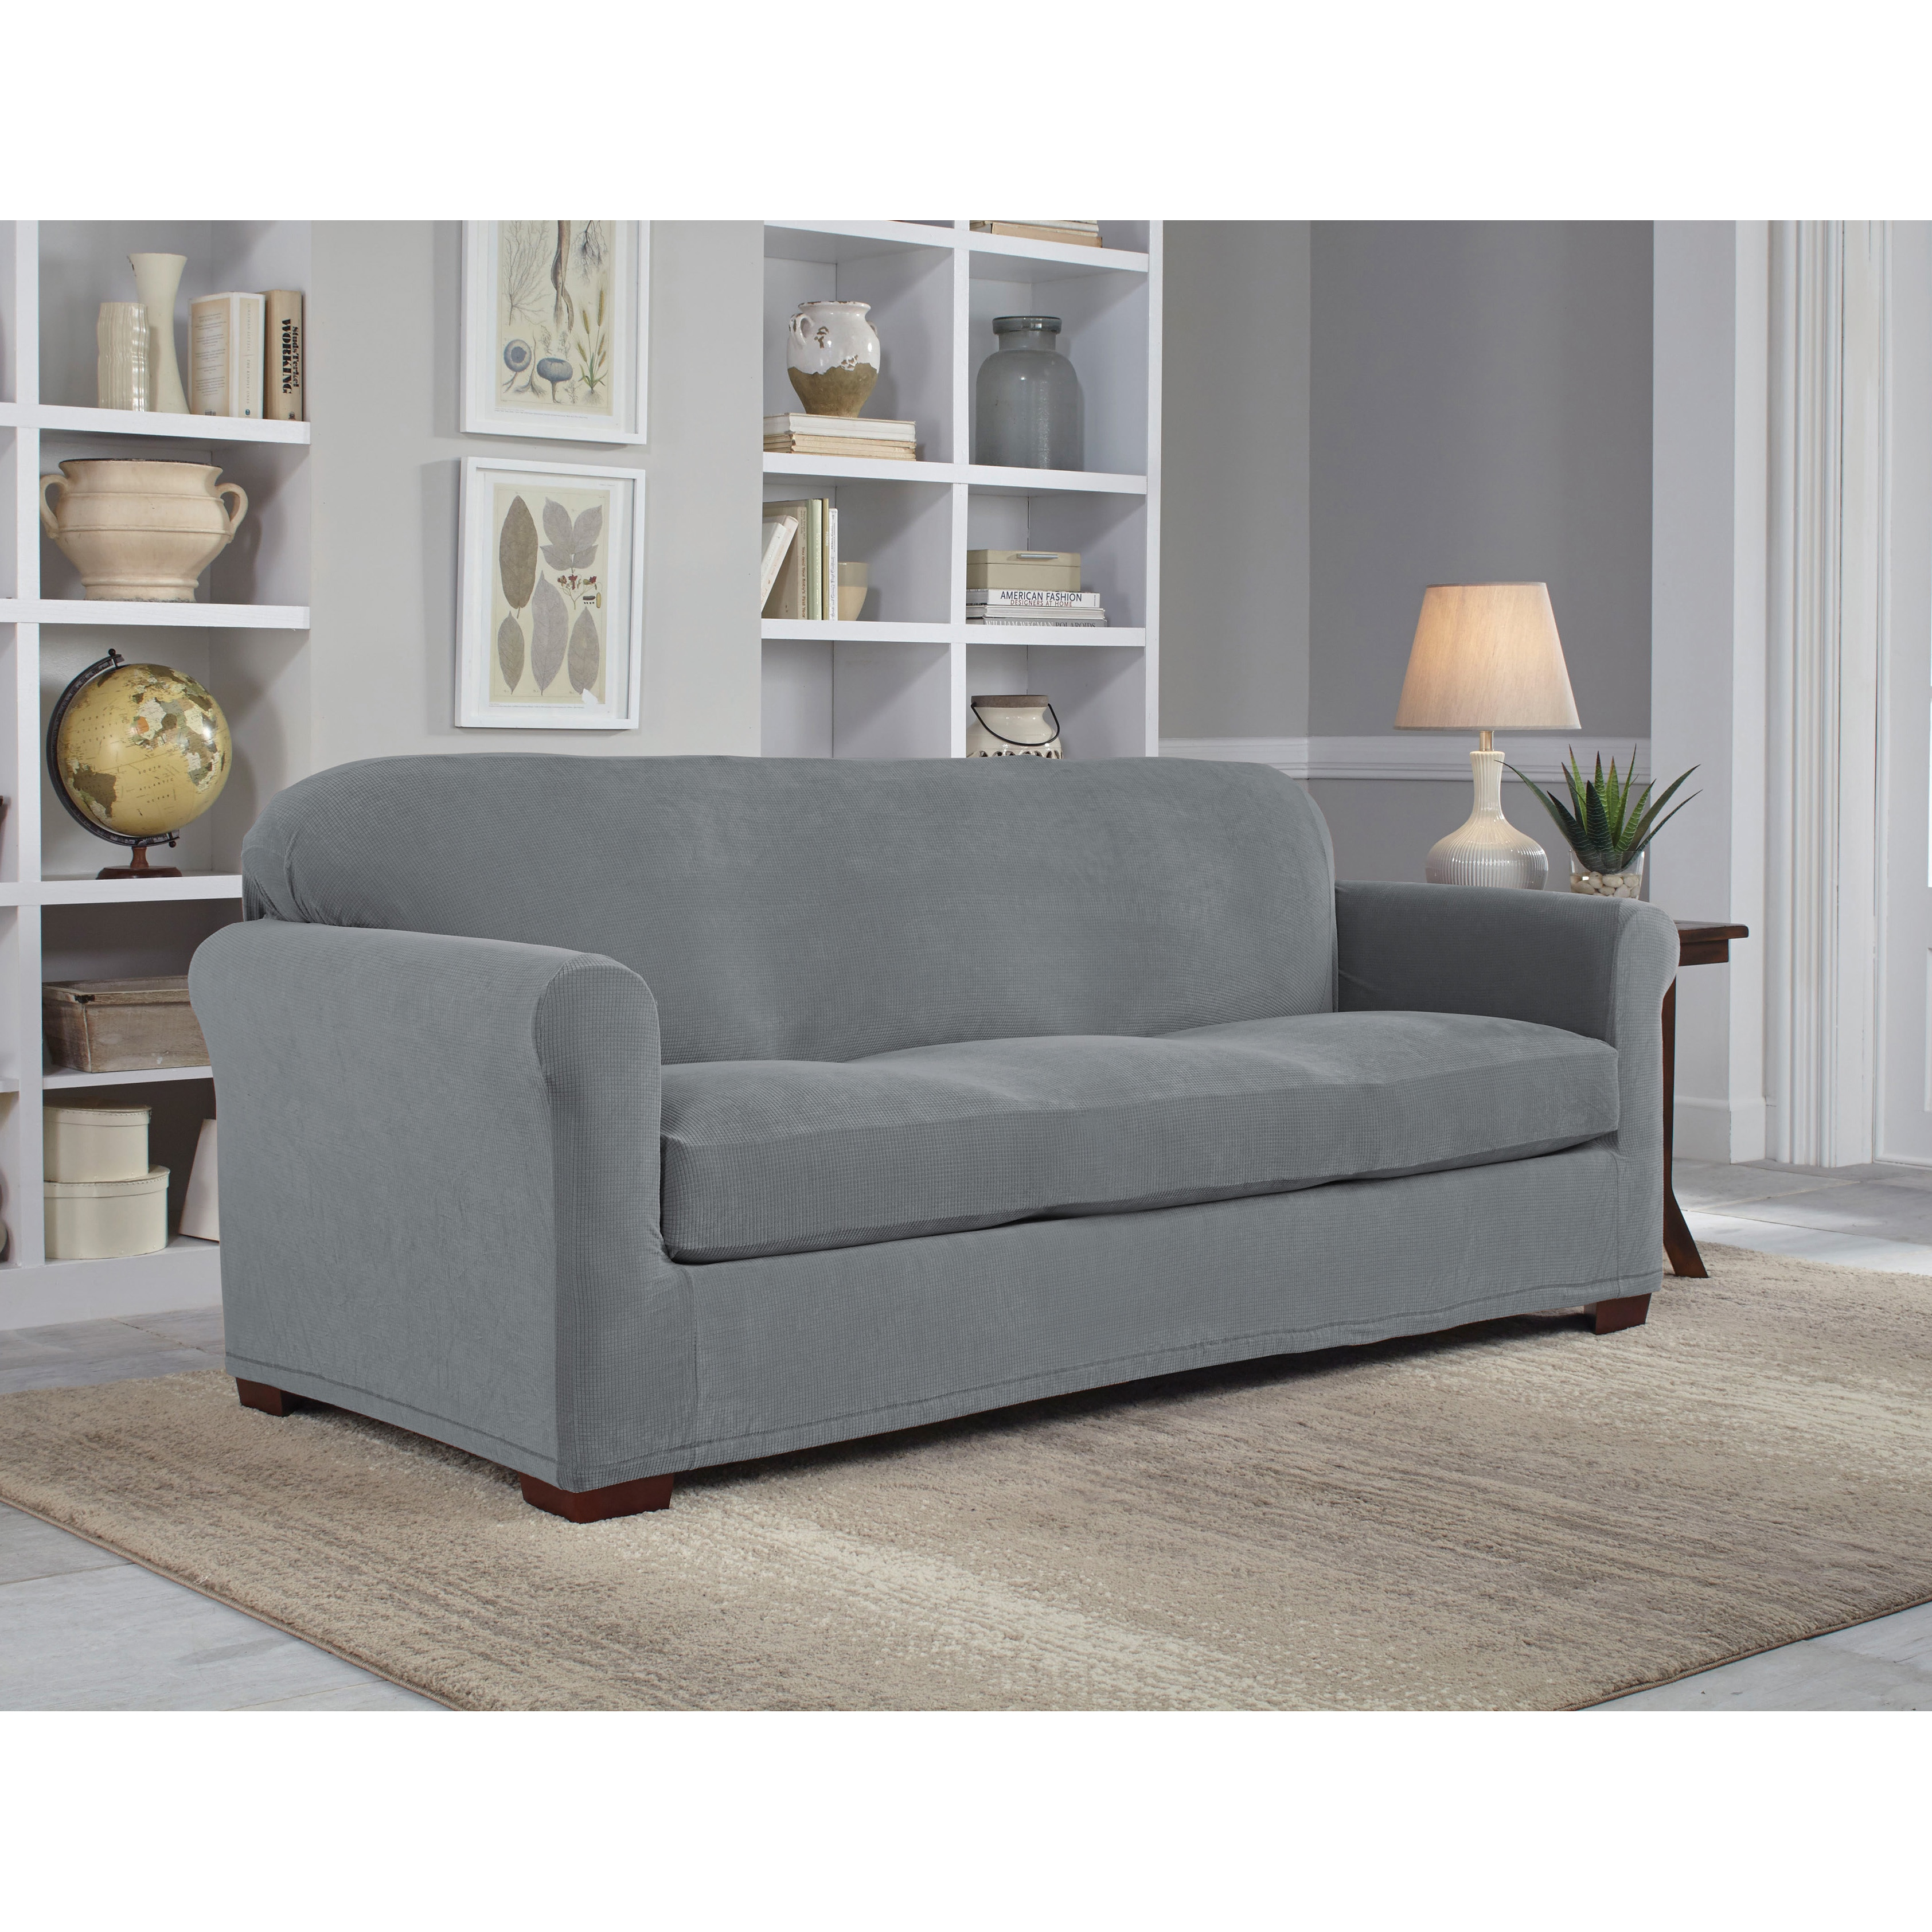 Tailor Fit Stretch Grid 2-piece Sofa Slipcover (As Is Ite...